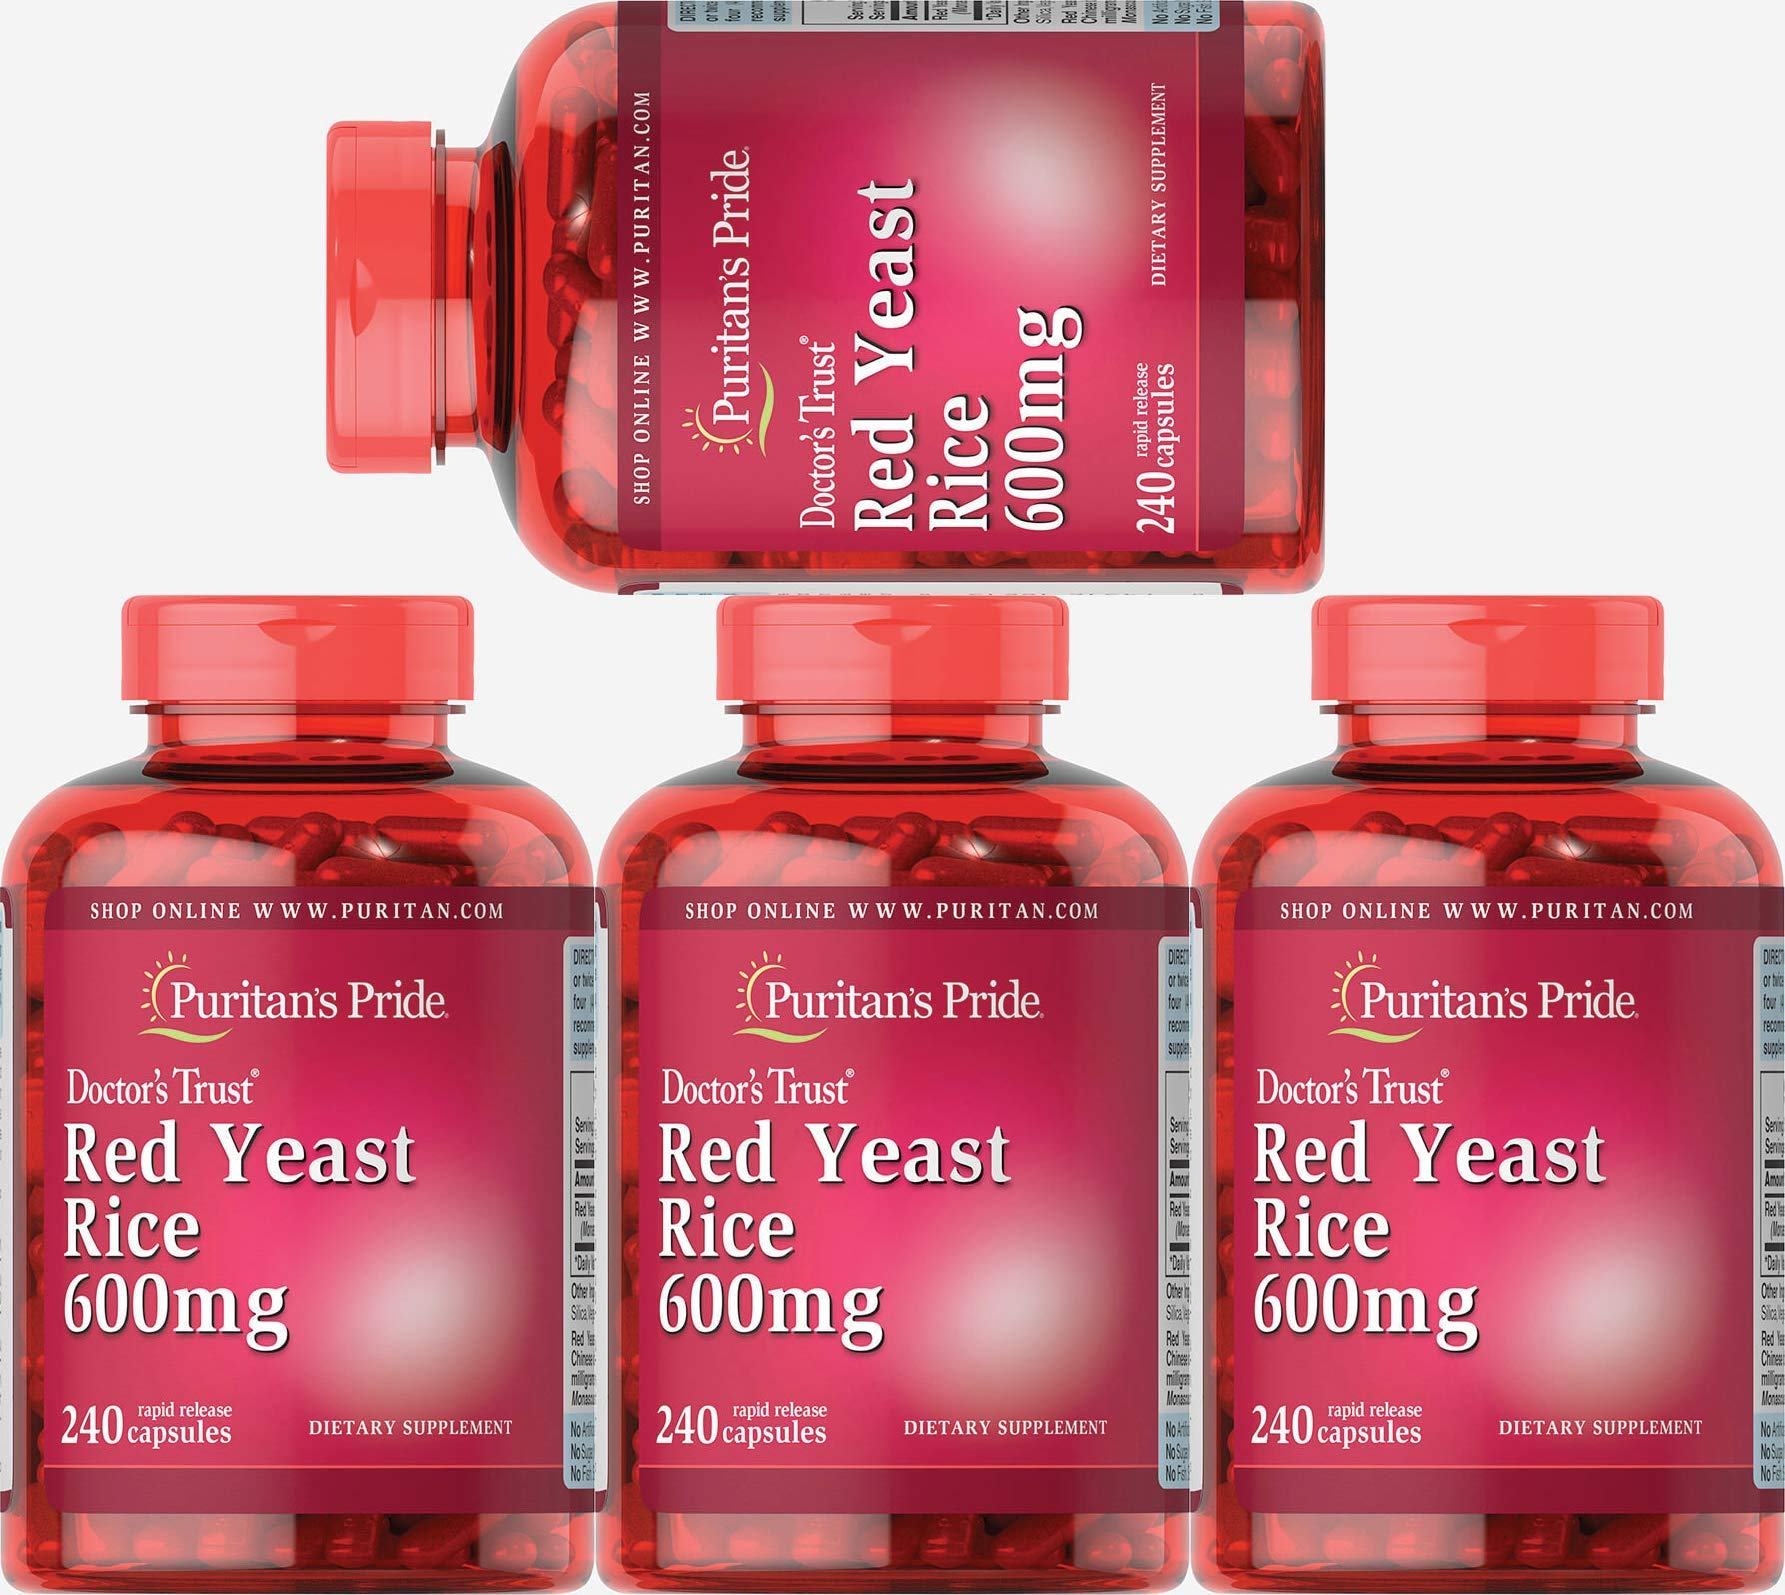 Puritans Pride Red Yeast Rice 600 Mg Capsules, 960 Count (4 Pack)